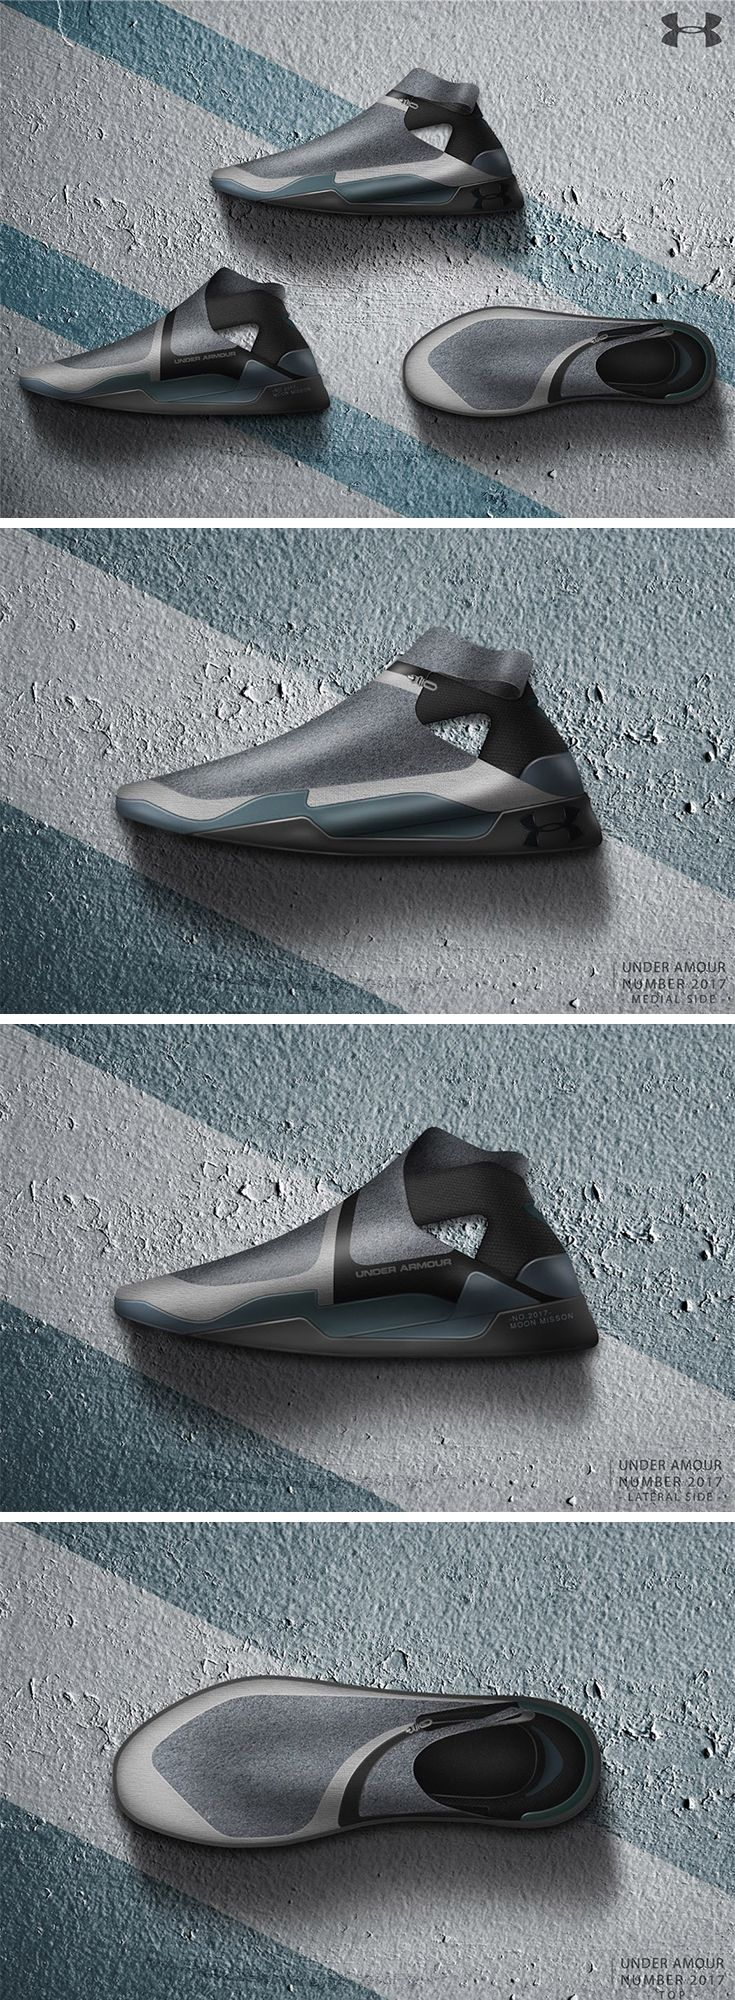 The Under Armour No.2017 Moon Mission is a far-out fashion exploration by designer Wu Cheng-En. The shoe's streamlined silhouette takes inspiration from the lines and shapes found in aircraft and spacecraft, applying the functional styling to the form and material contrasts of the shoe. It also expresses the wing structure with familiar details found on the midsole and outsole sections.